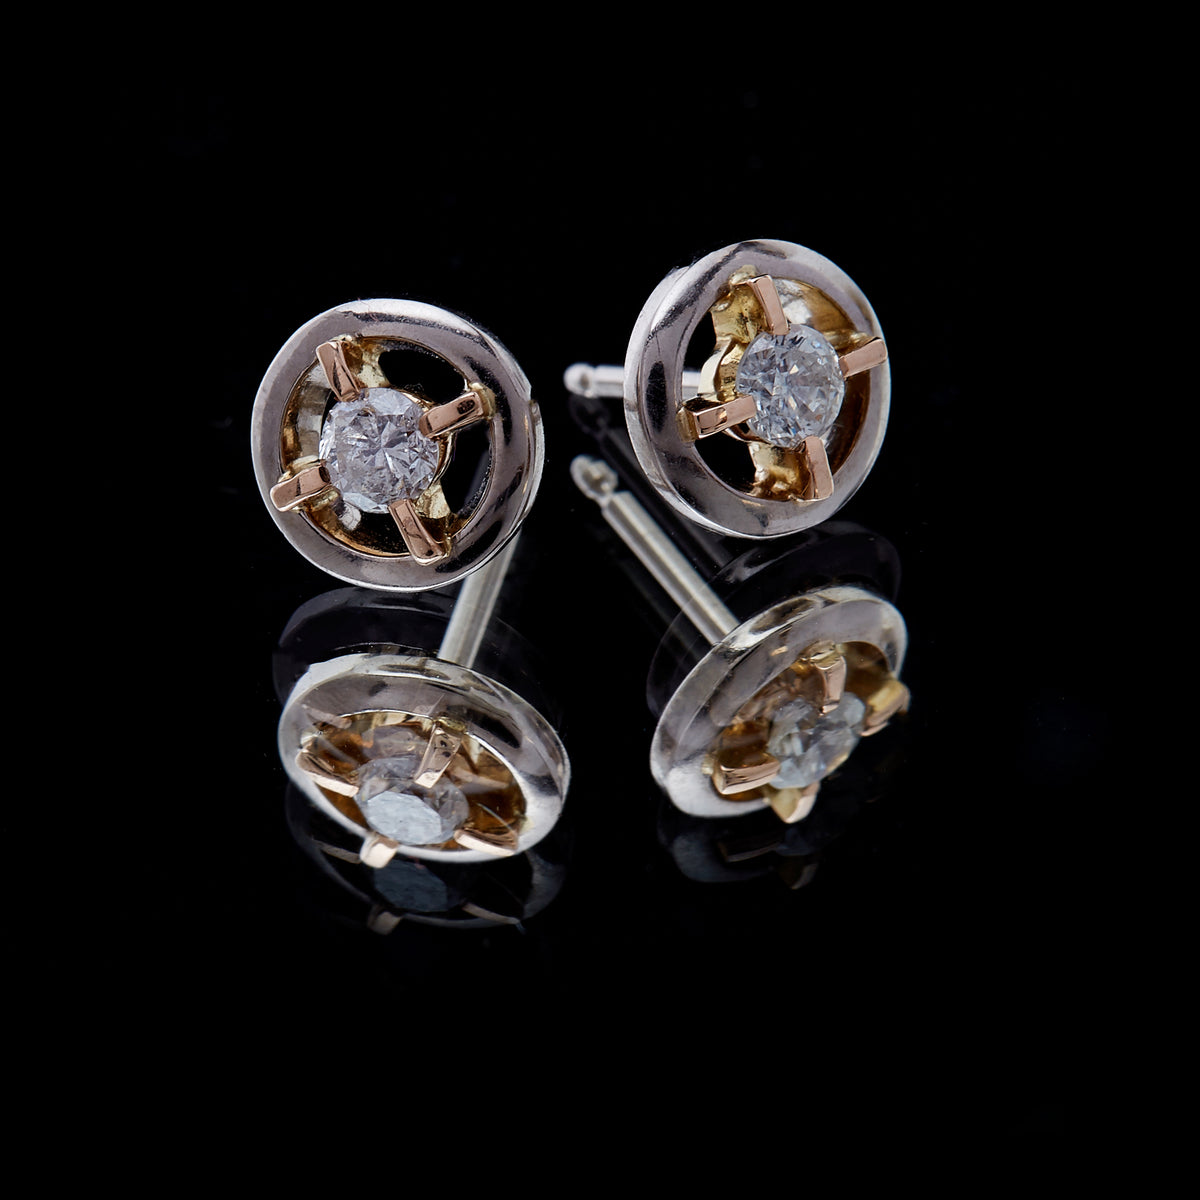 Guy and Max Round Brilliant Cut Diamond, White and Rose Gold Orbital Stud Earrings, picture 4 of 4